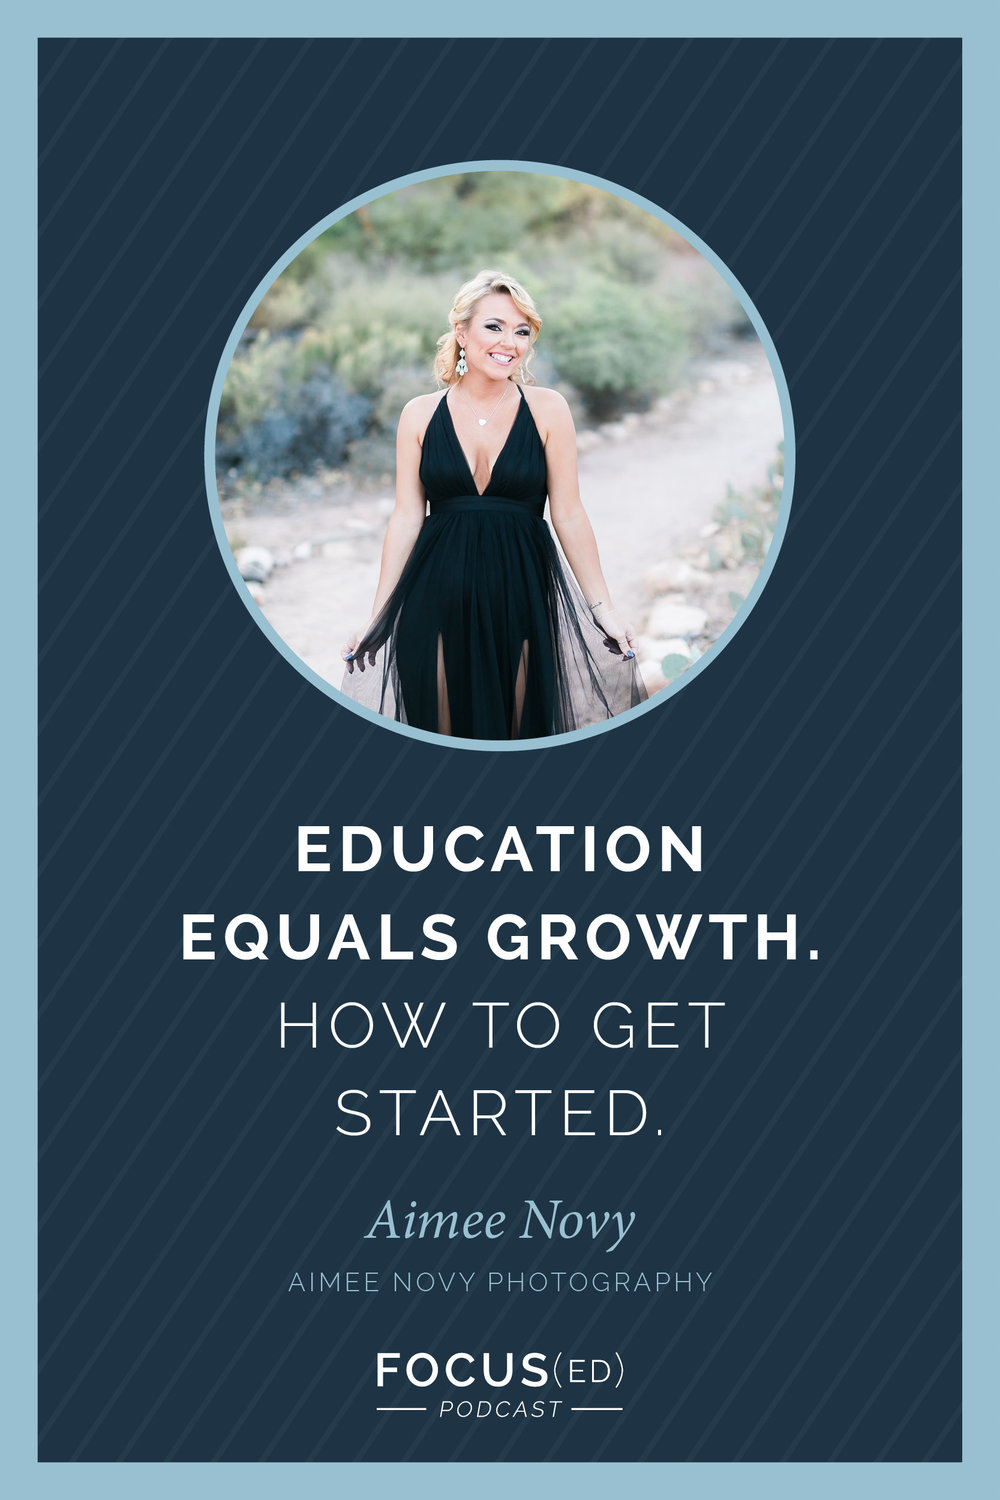 Education equals growth. How to get started with Aimee Novy Photography | Focus(ed) 074